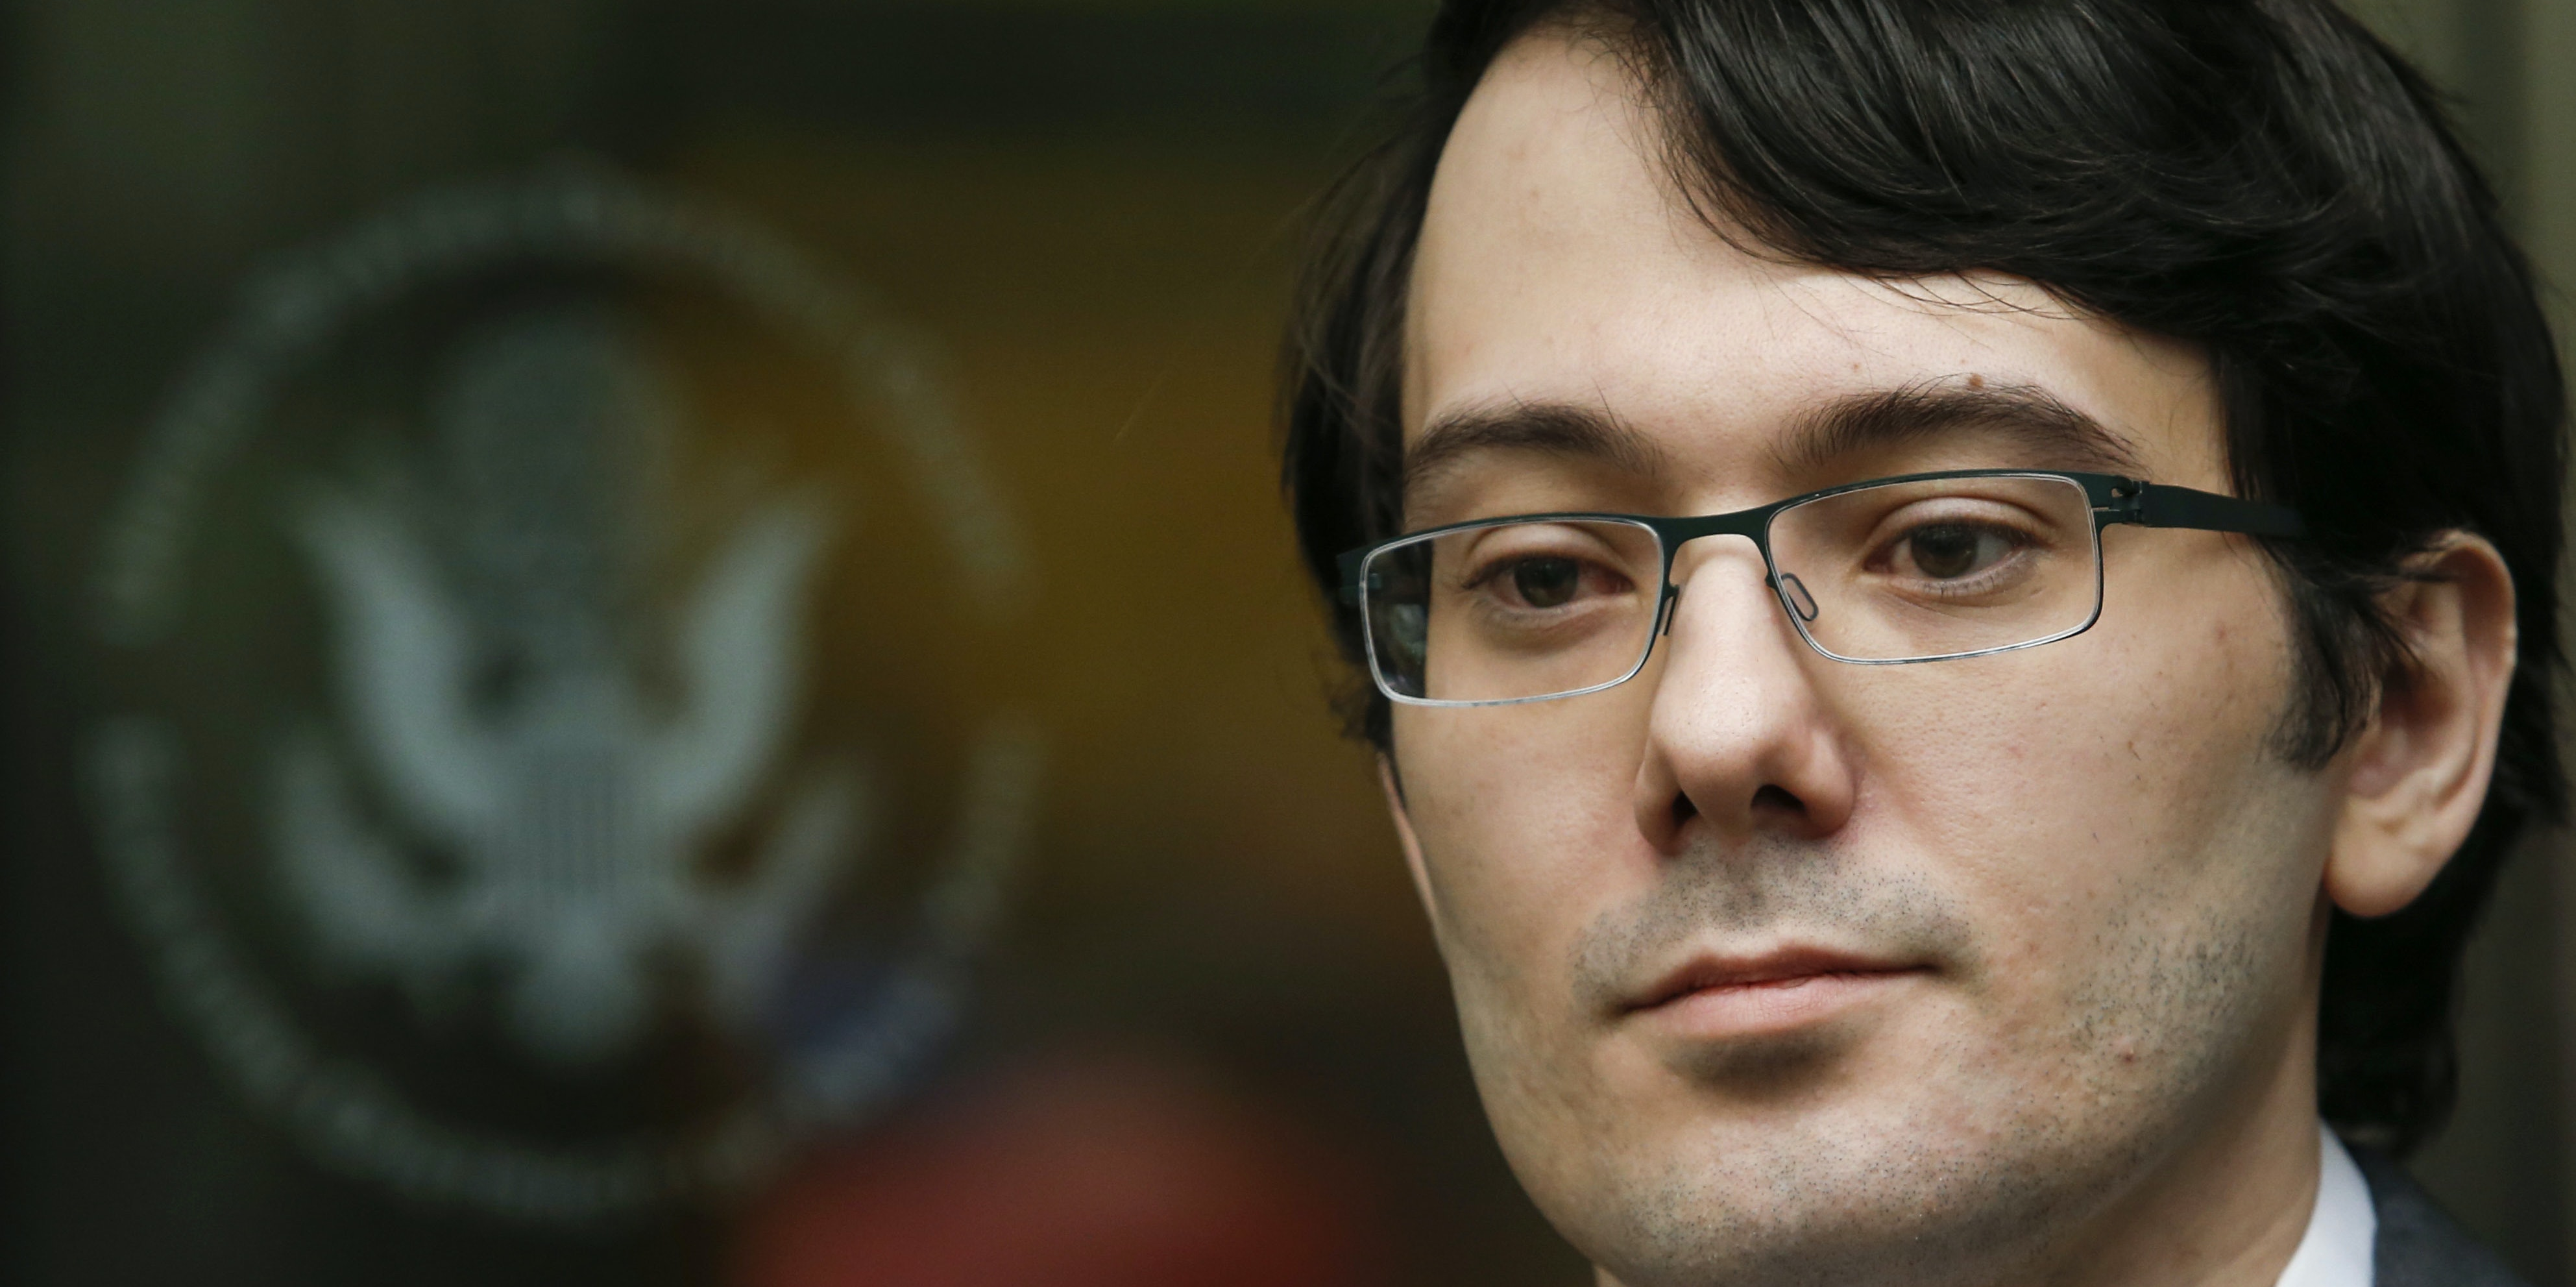 A Bunch of Kids Made Martin Shkreli's $750 Drug for $2